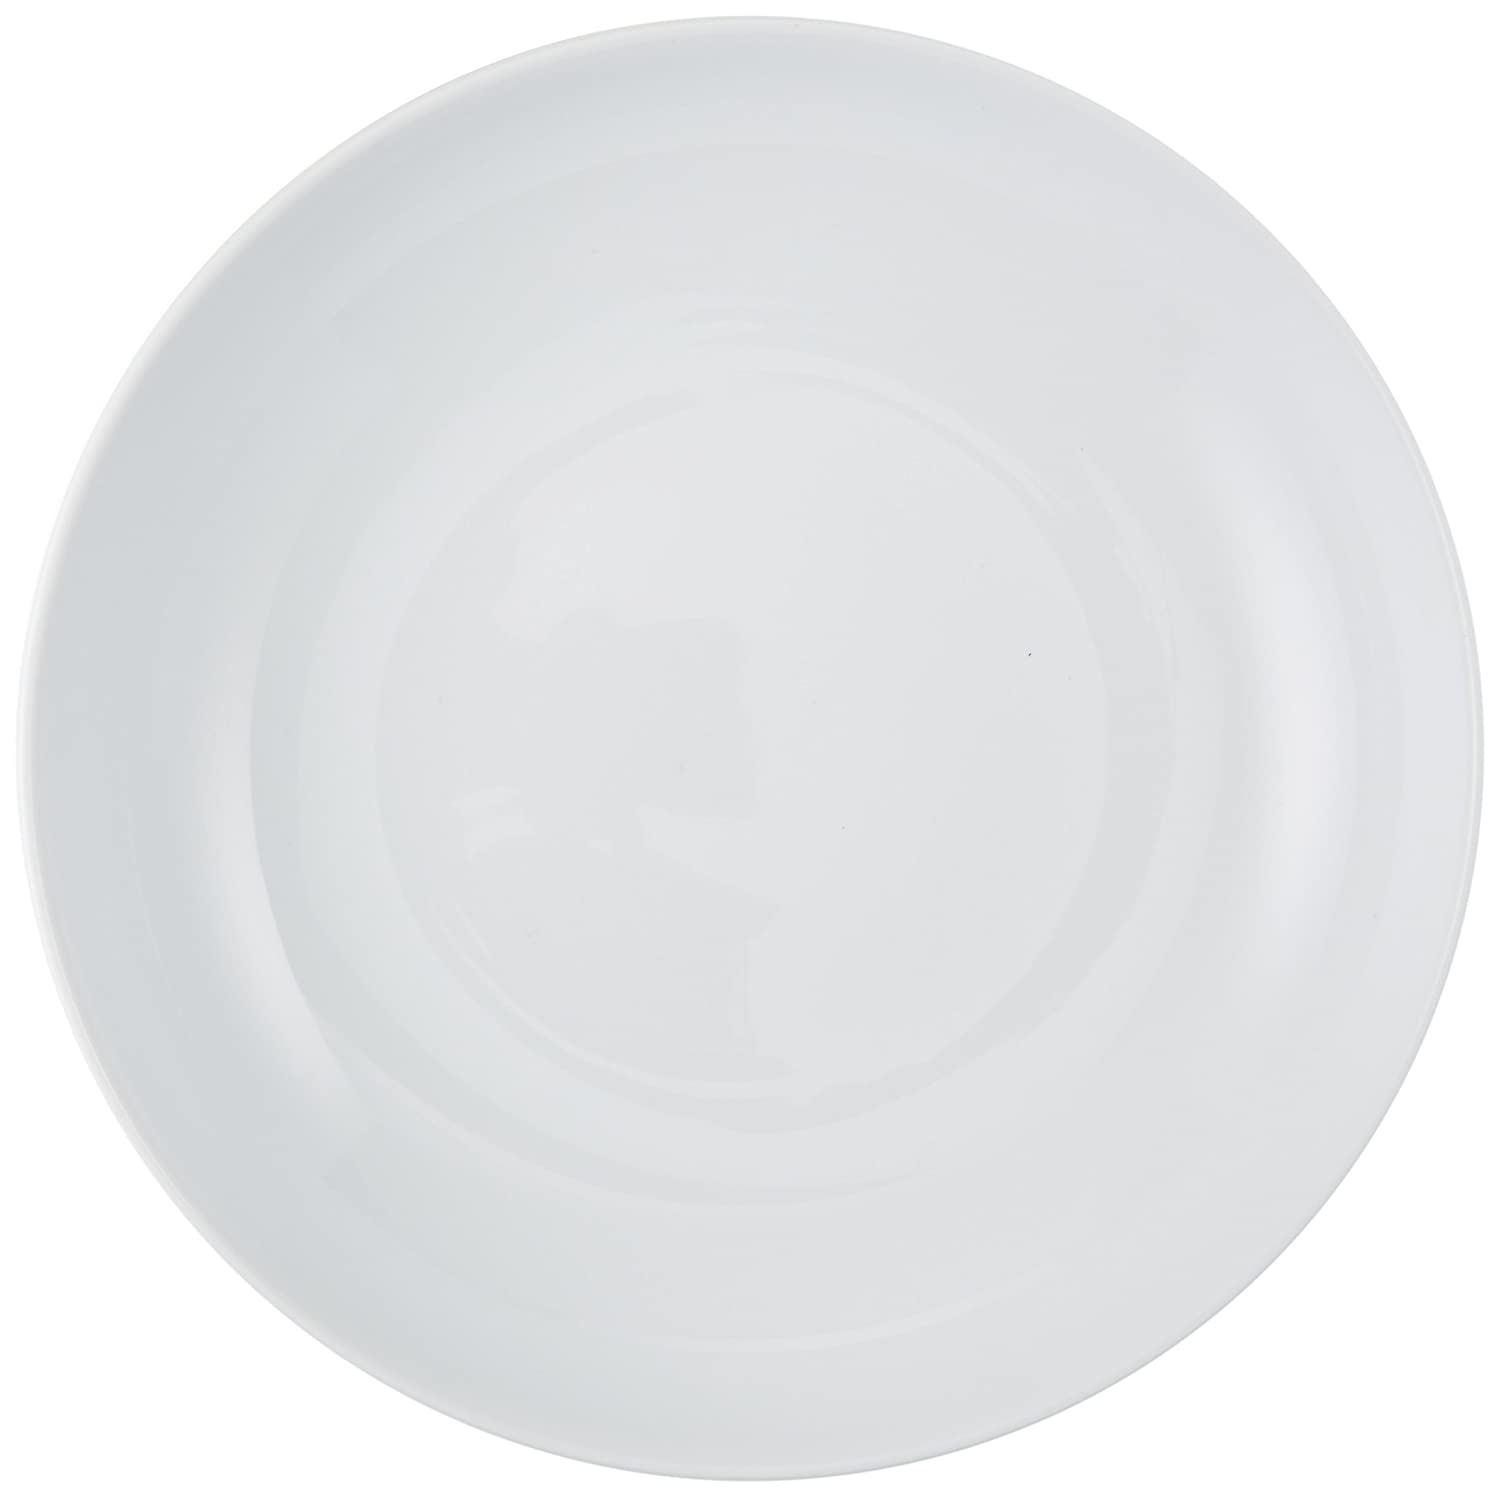 Denby White Pasta Bowl WHT-052 Bowls & Dishes China Tableware